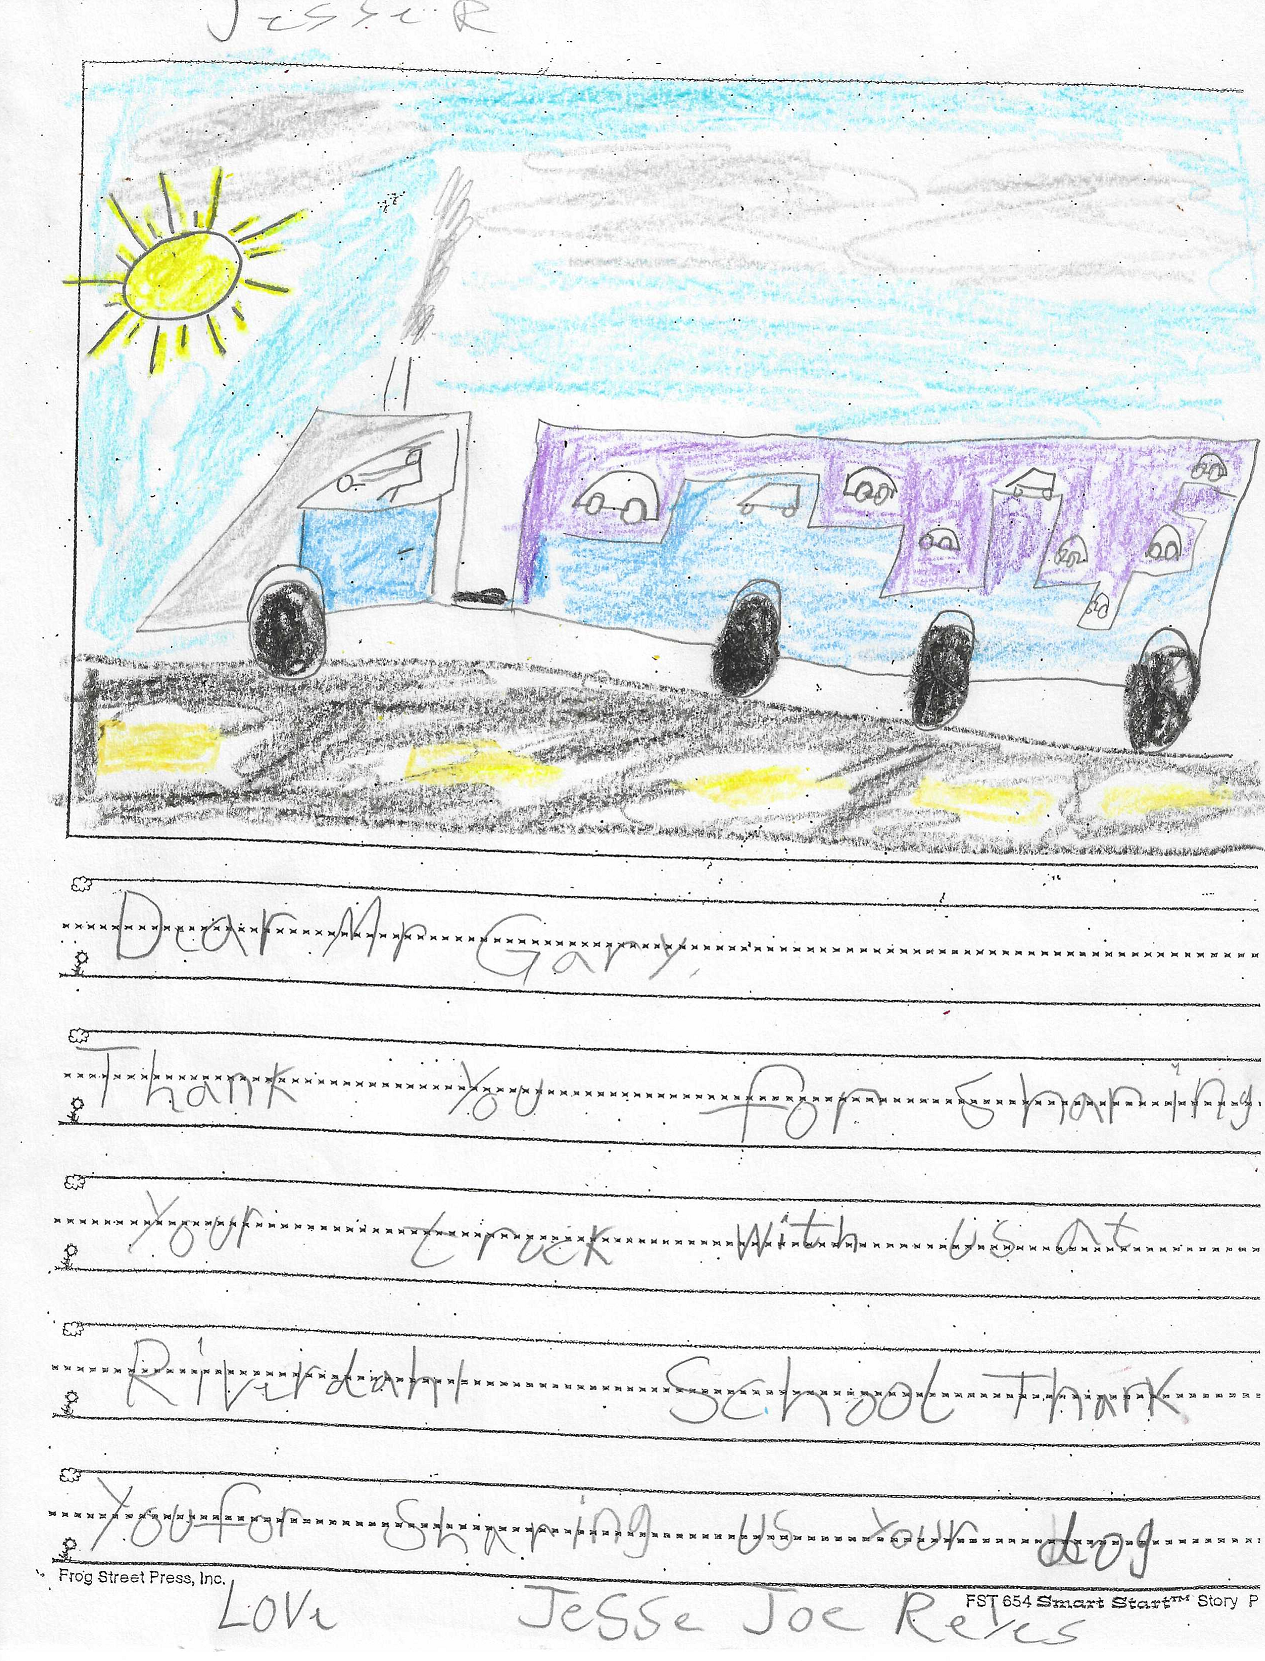 letter and drawing from kid to Gary Buchs